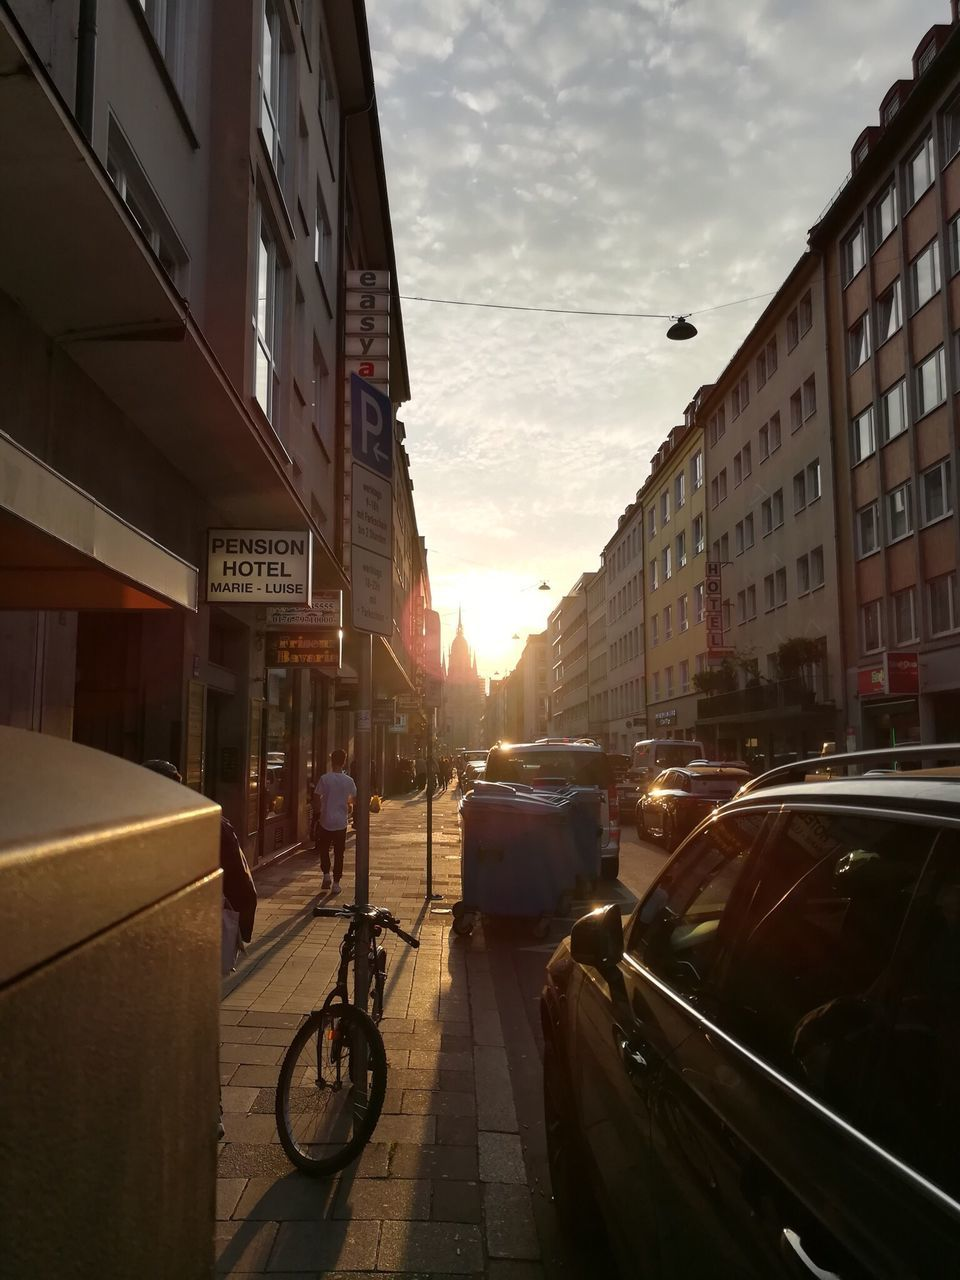 building exterior, architecture, car, city, built structure, transportation, land vehicle, street, mode of transport, sky, city life, outdoors, sunlight, road, sunset, day, no people